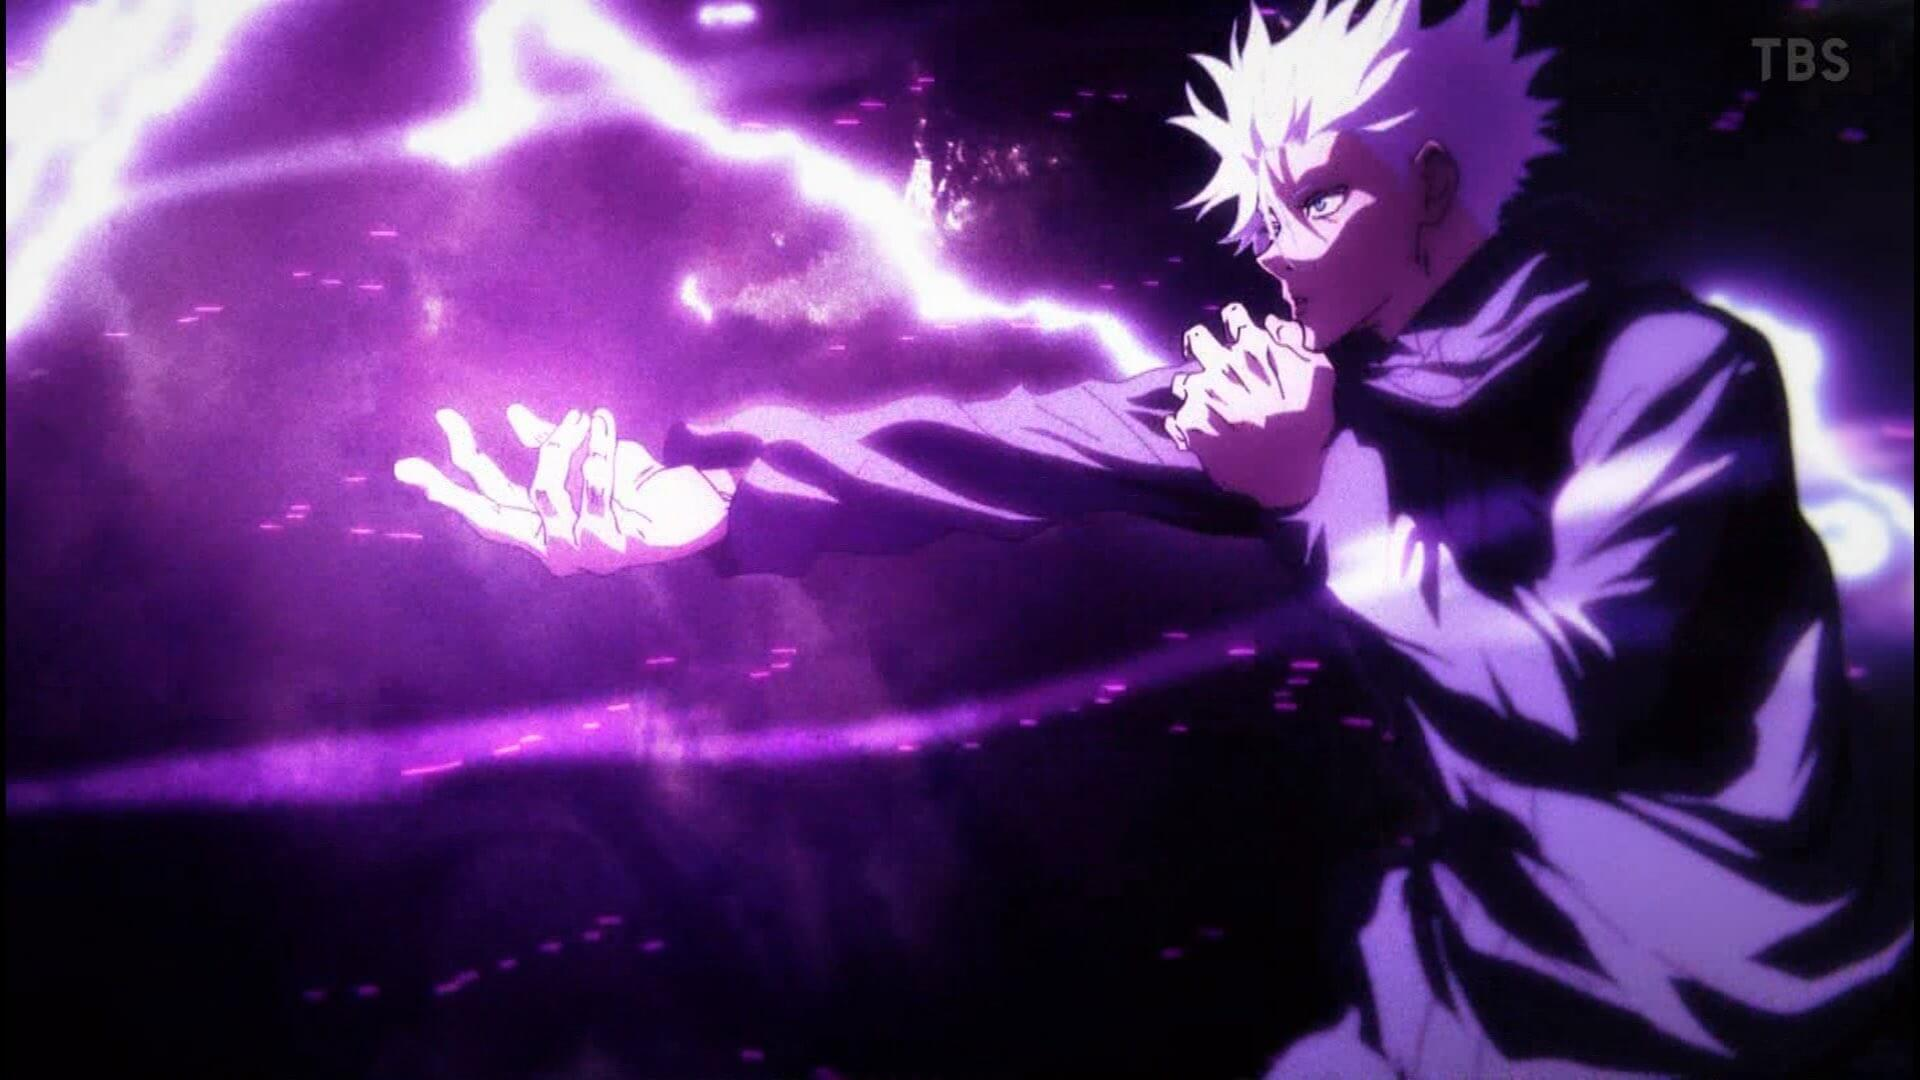 Jujutsu Kaisen Chapter 141 Read Online for Free and Legally